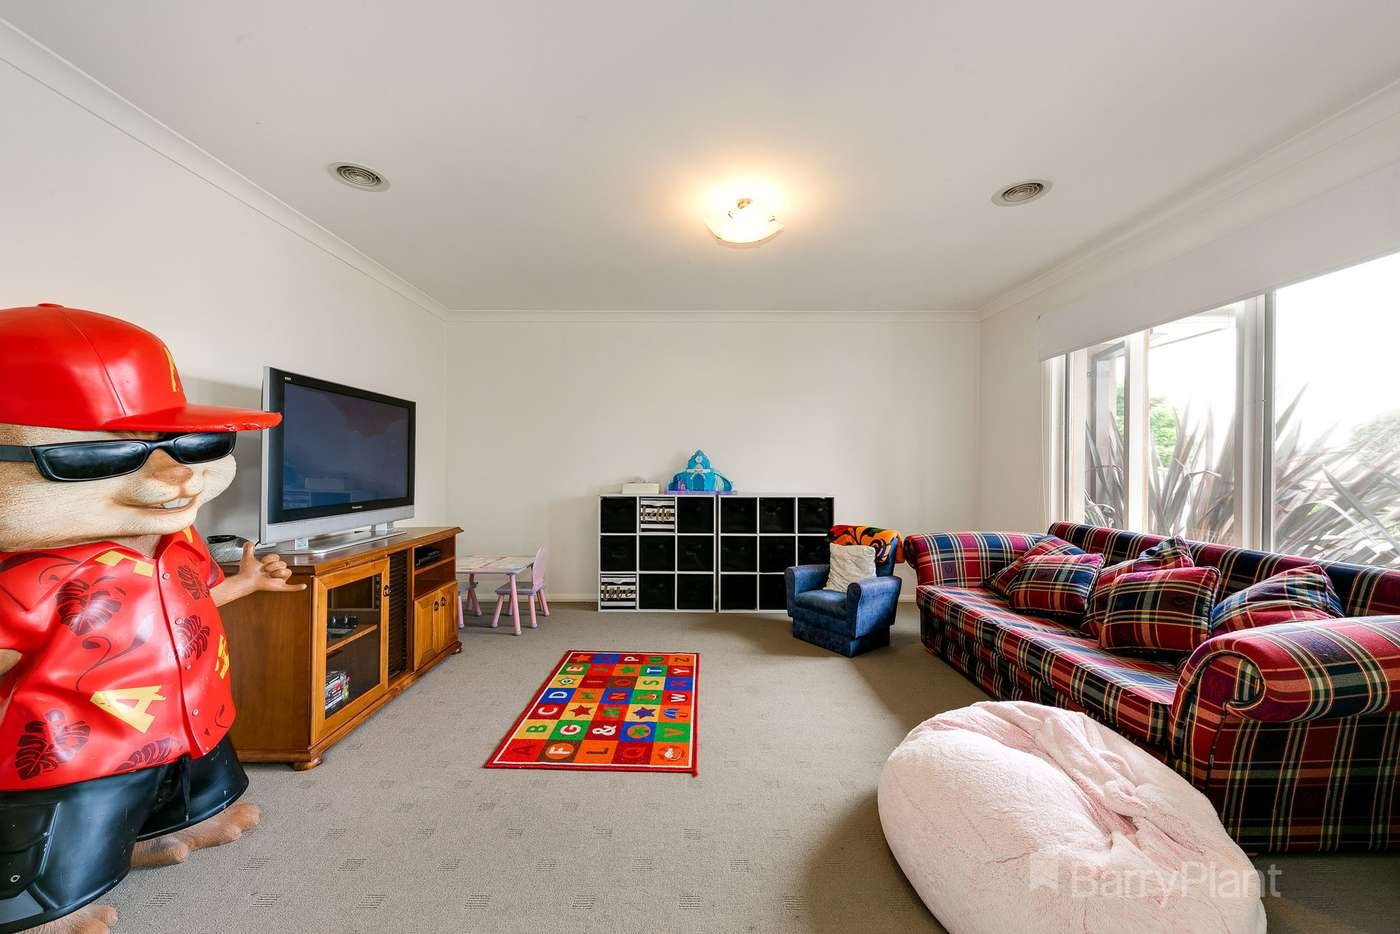 Seventh view of Homely house listing, 30 Victoria Place, Pakenham VIC 3810